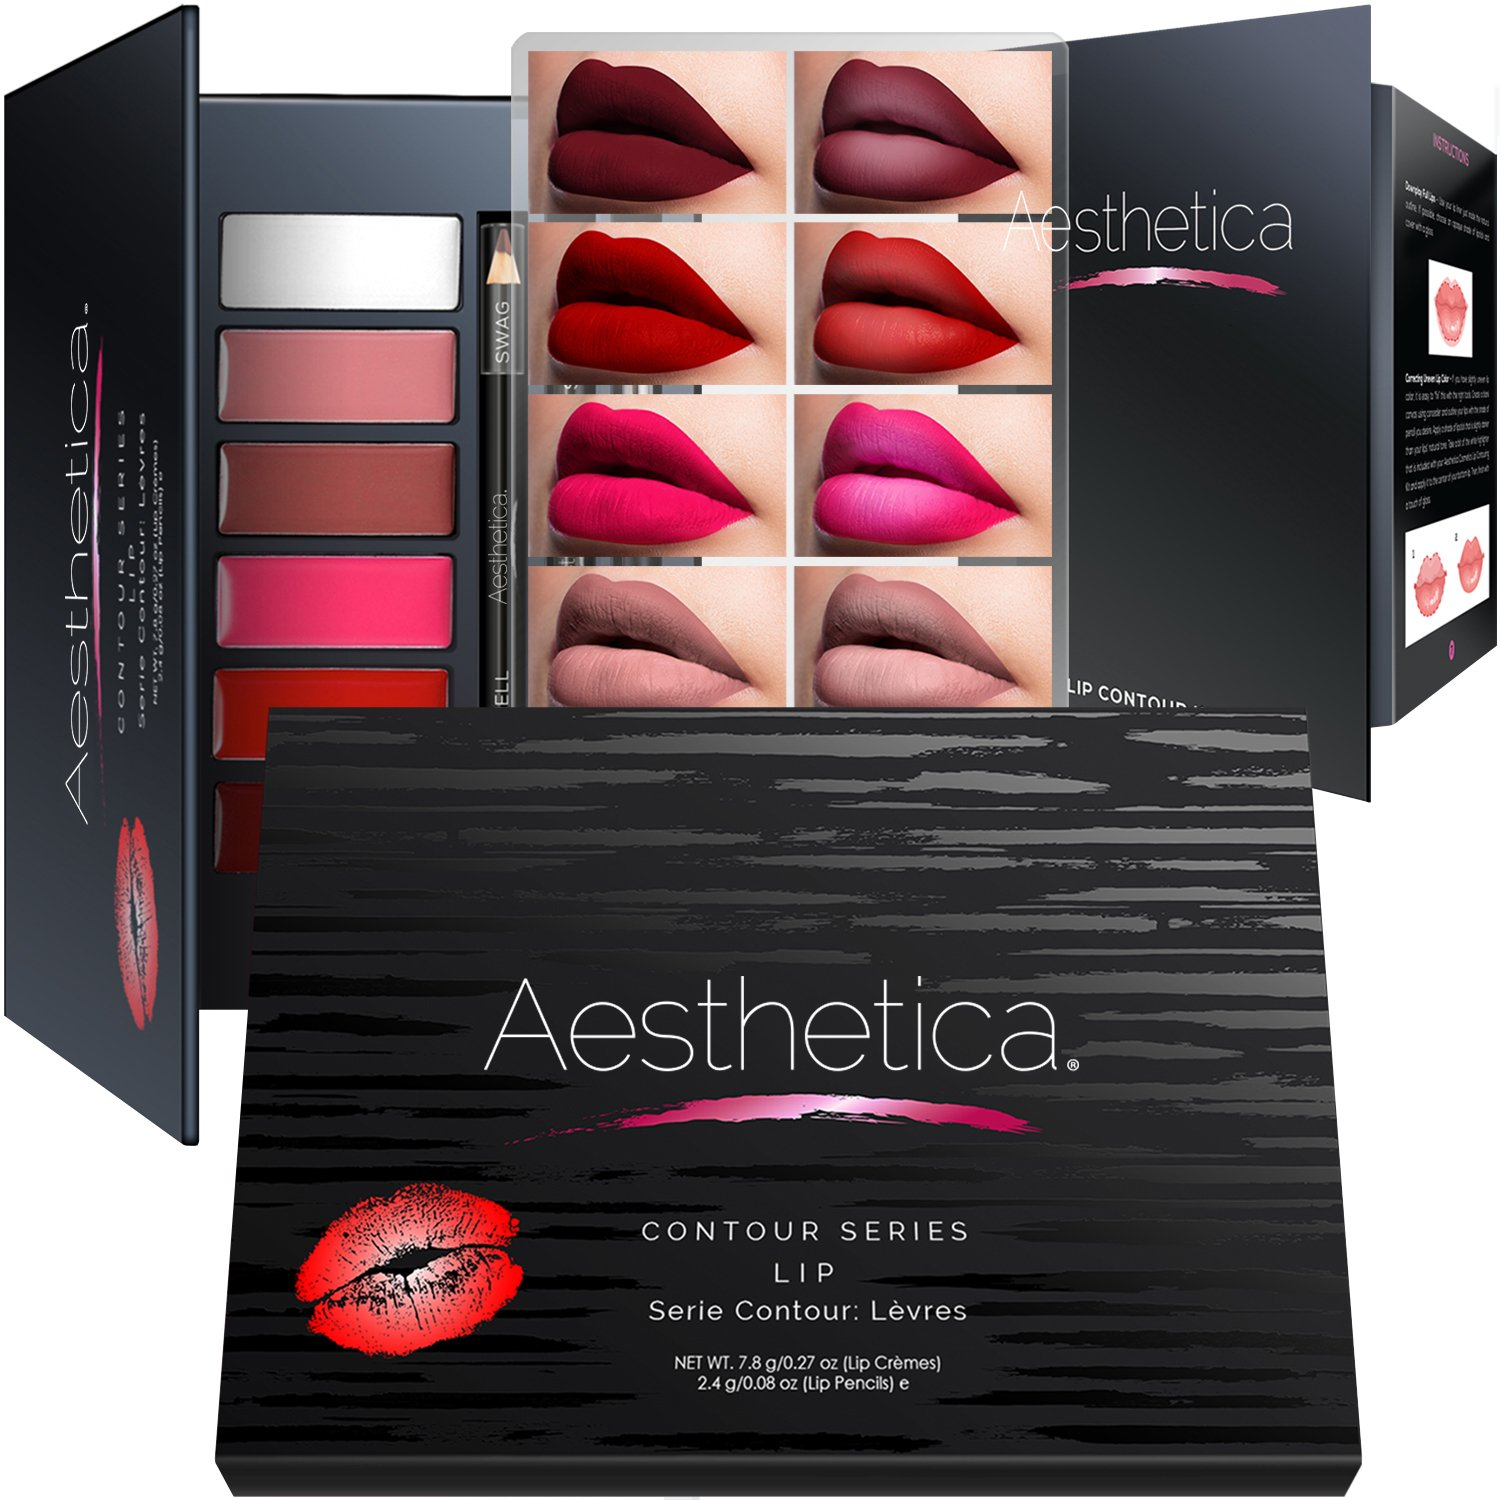 Aesthetica Matte Lip Contour Kit - Lipstick Palette Set Includes 6 Lip Colors, 4 Lip Liners, Lip Brush and Instructions by Aesthetica (Image #1)